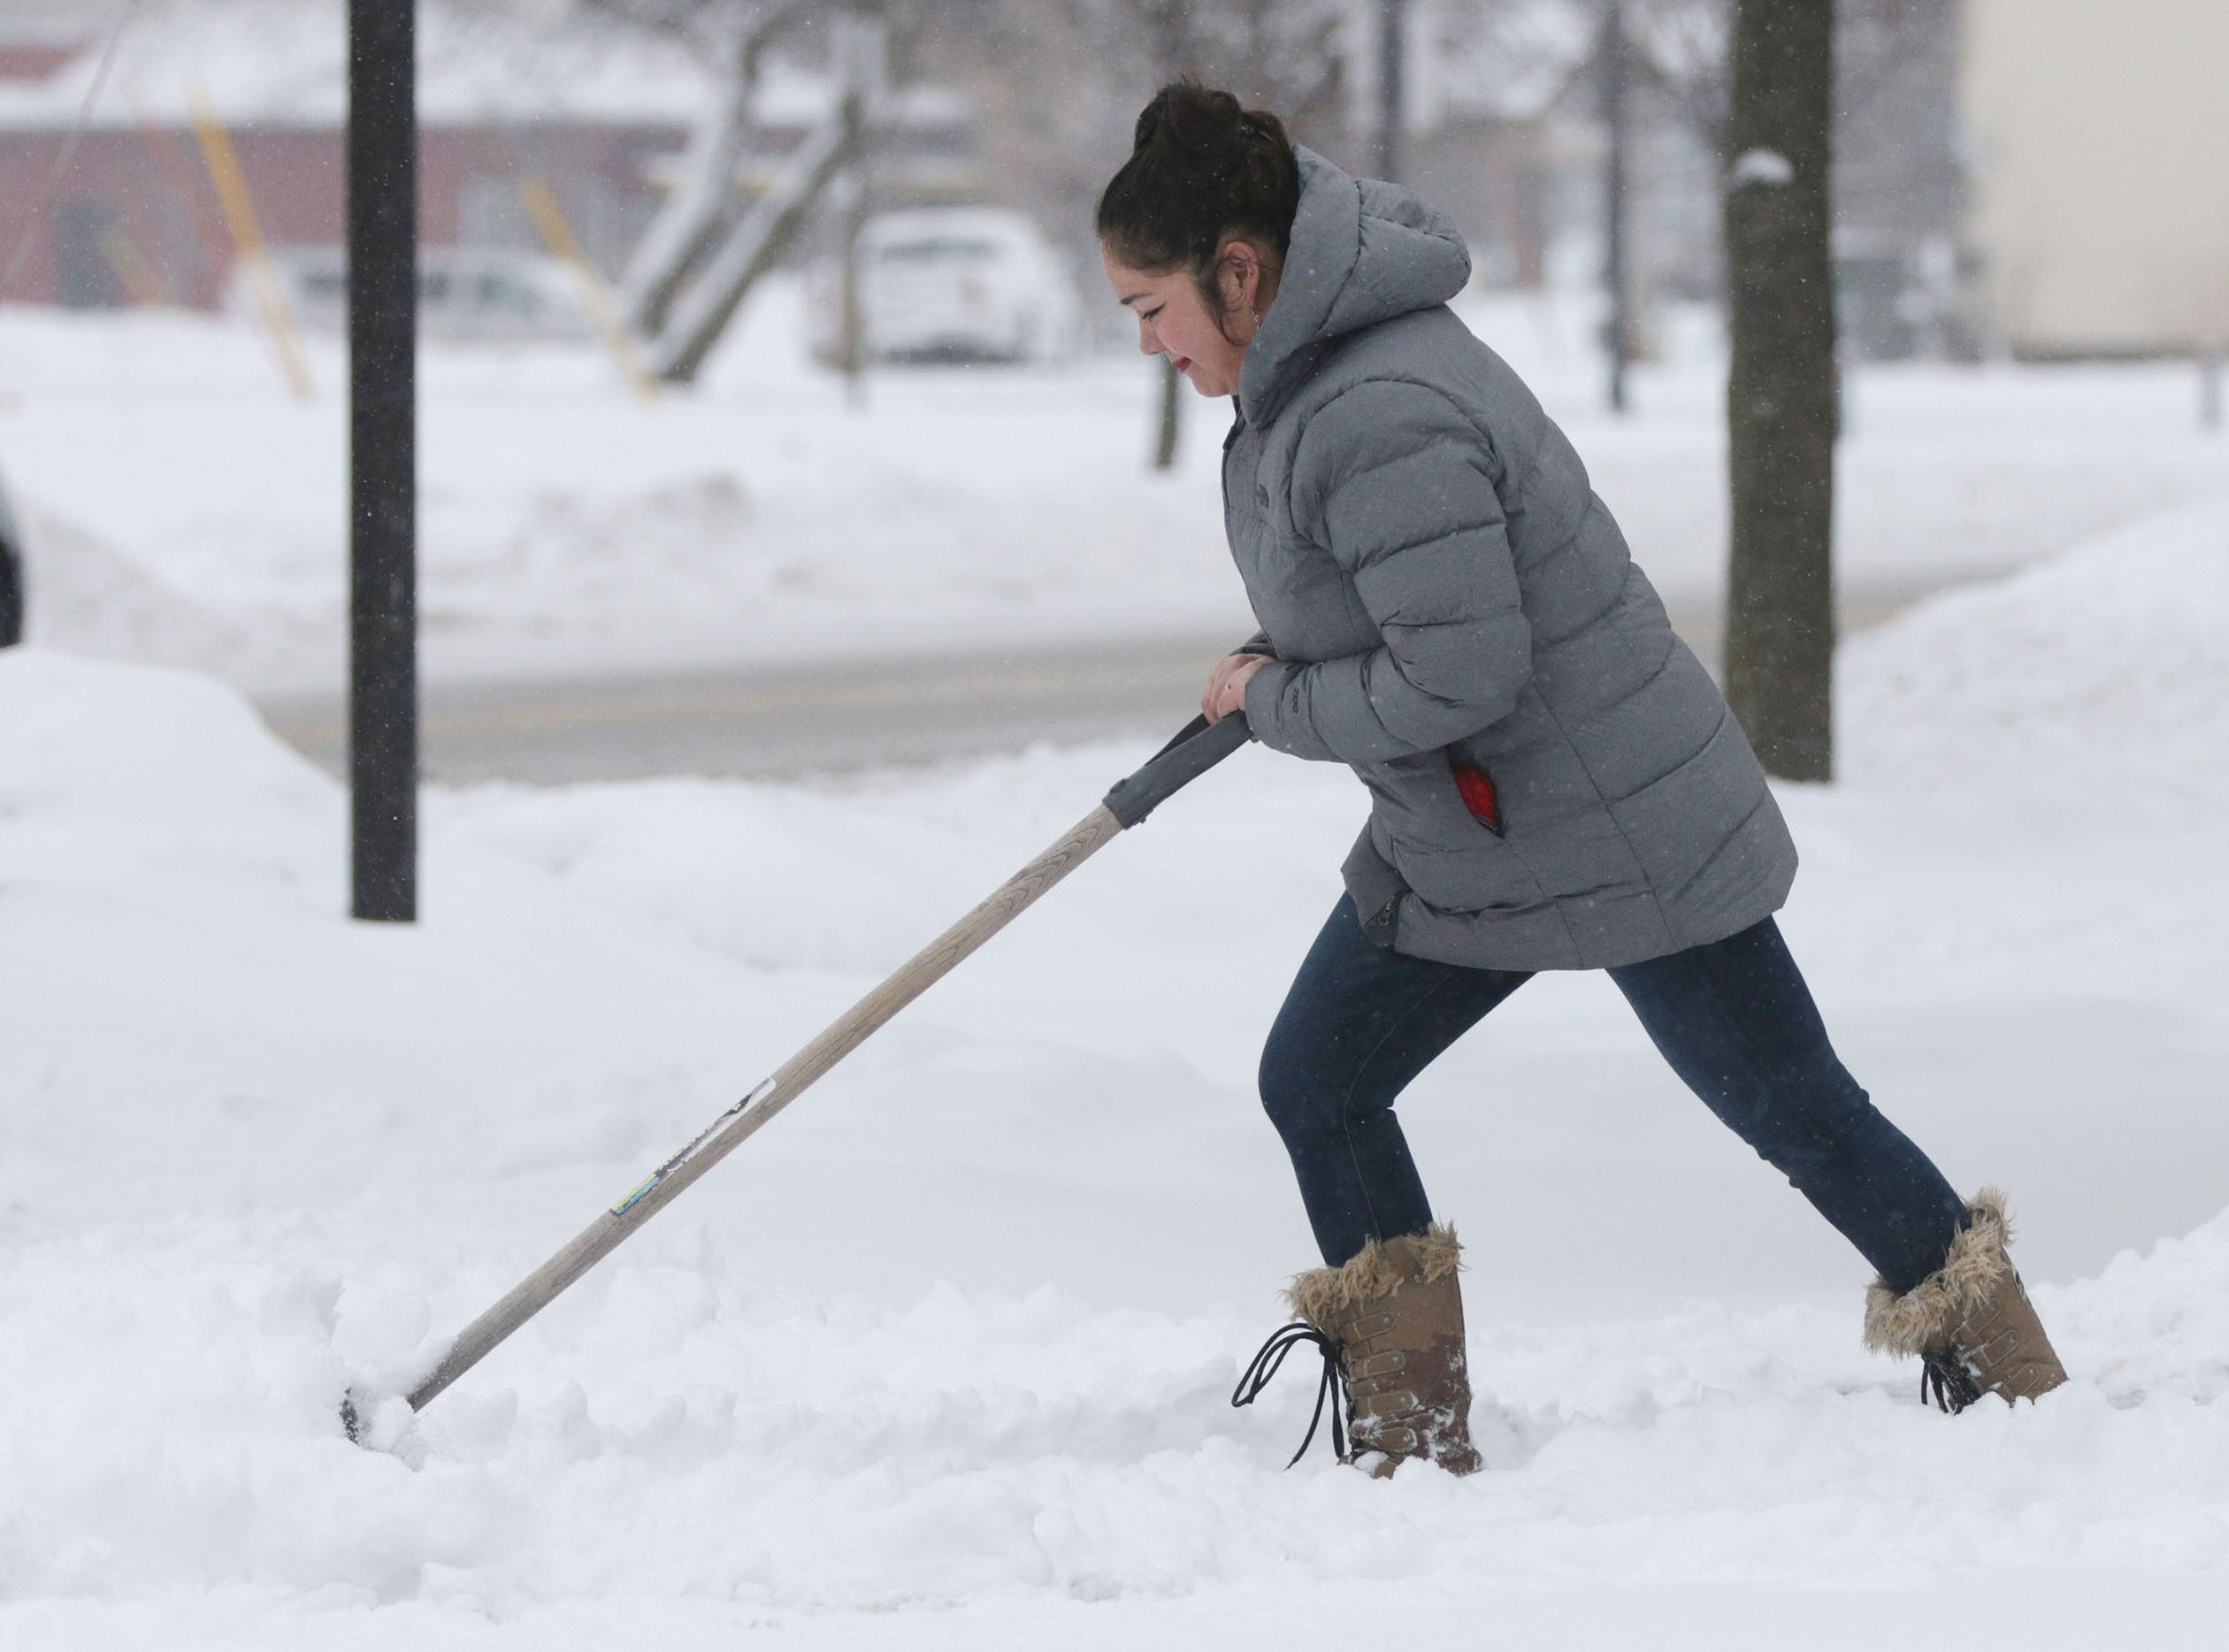 Rieyna Guerrerro pushes a snow shovel at  La Reyna on Indiana Avenue, Wednesday, January 23, 2019, in Sheboygan, Wis.